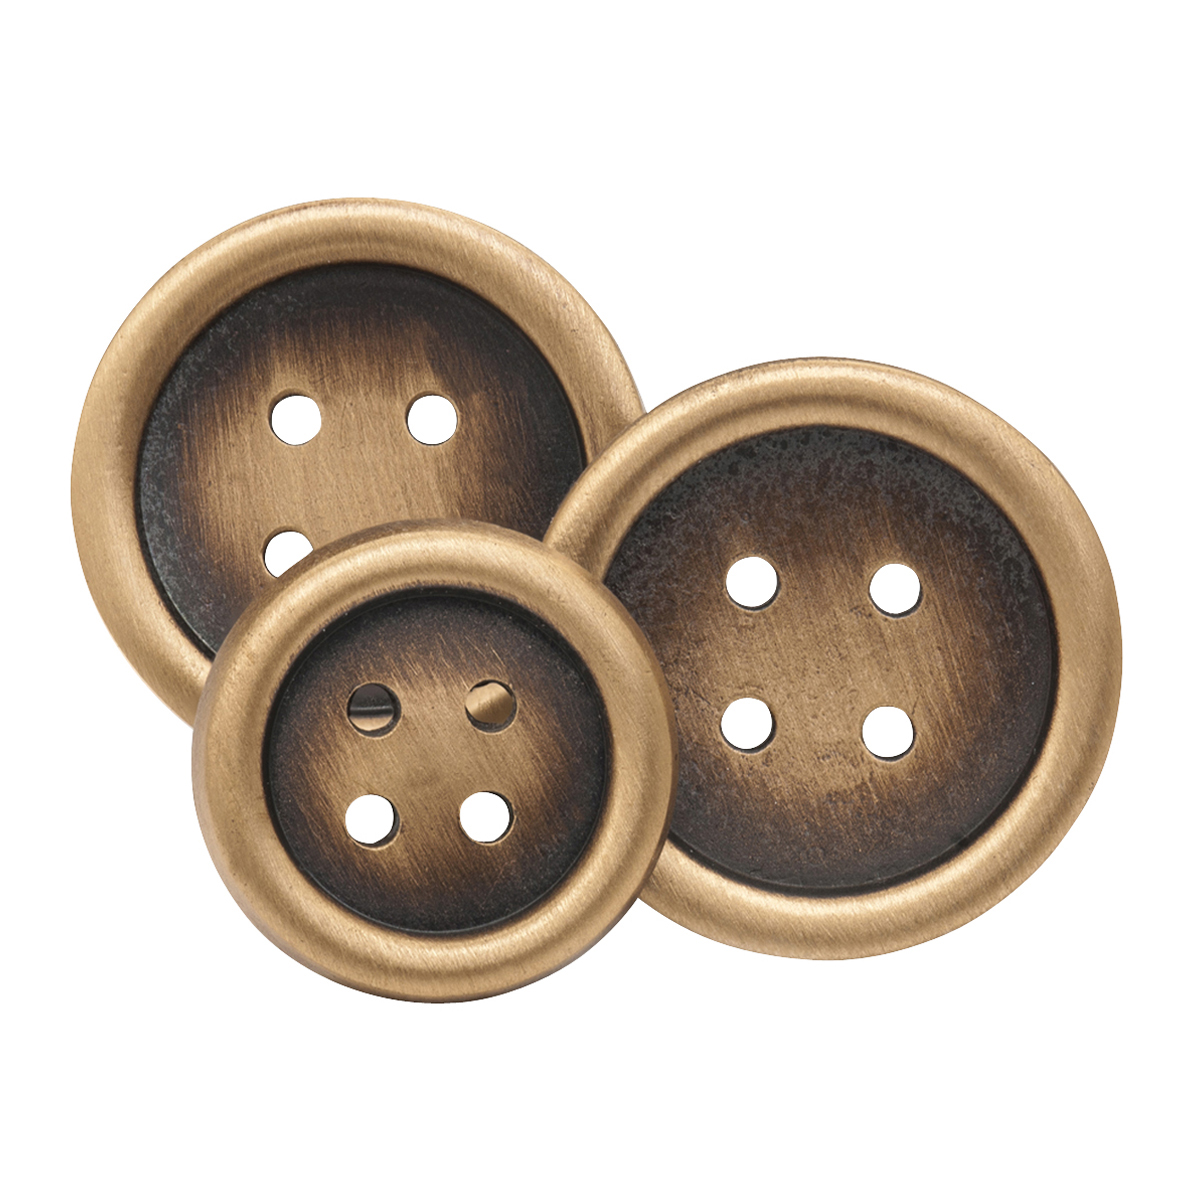 Four Hole In Single Breasted Blazer Button Set